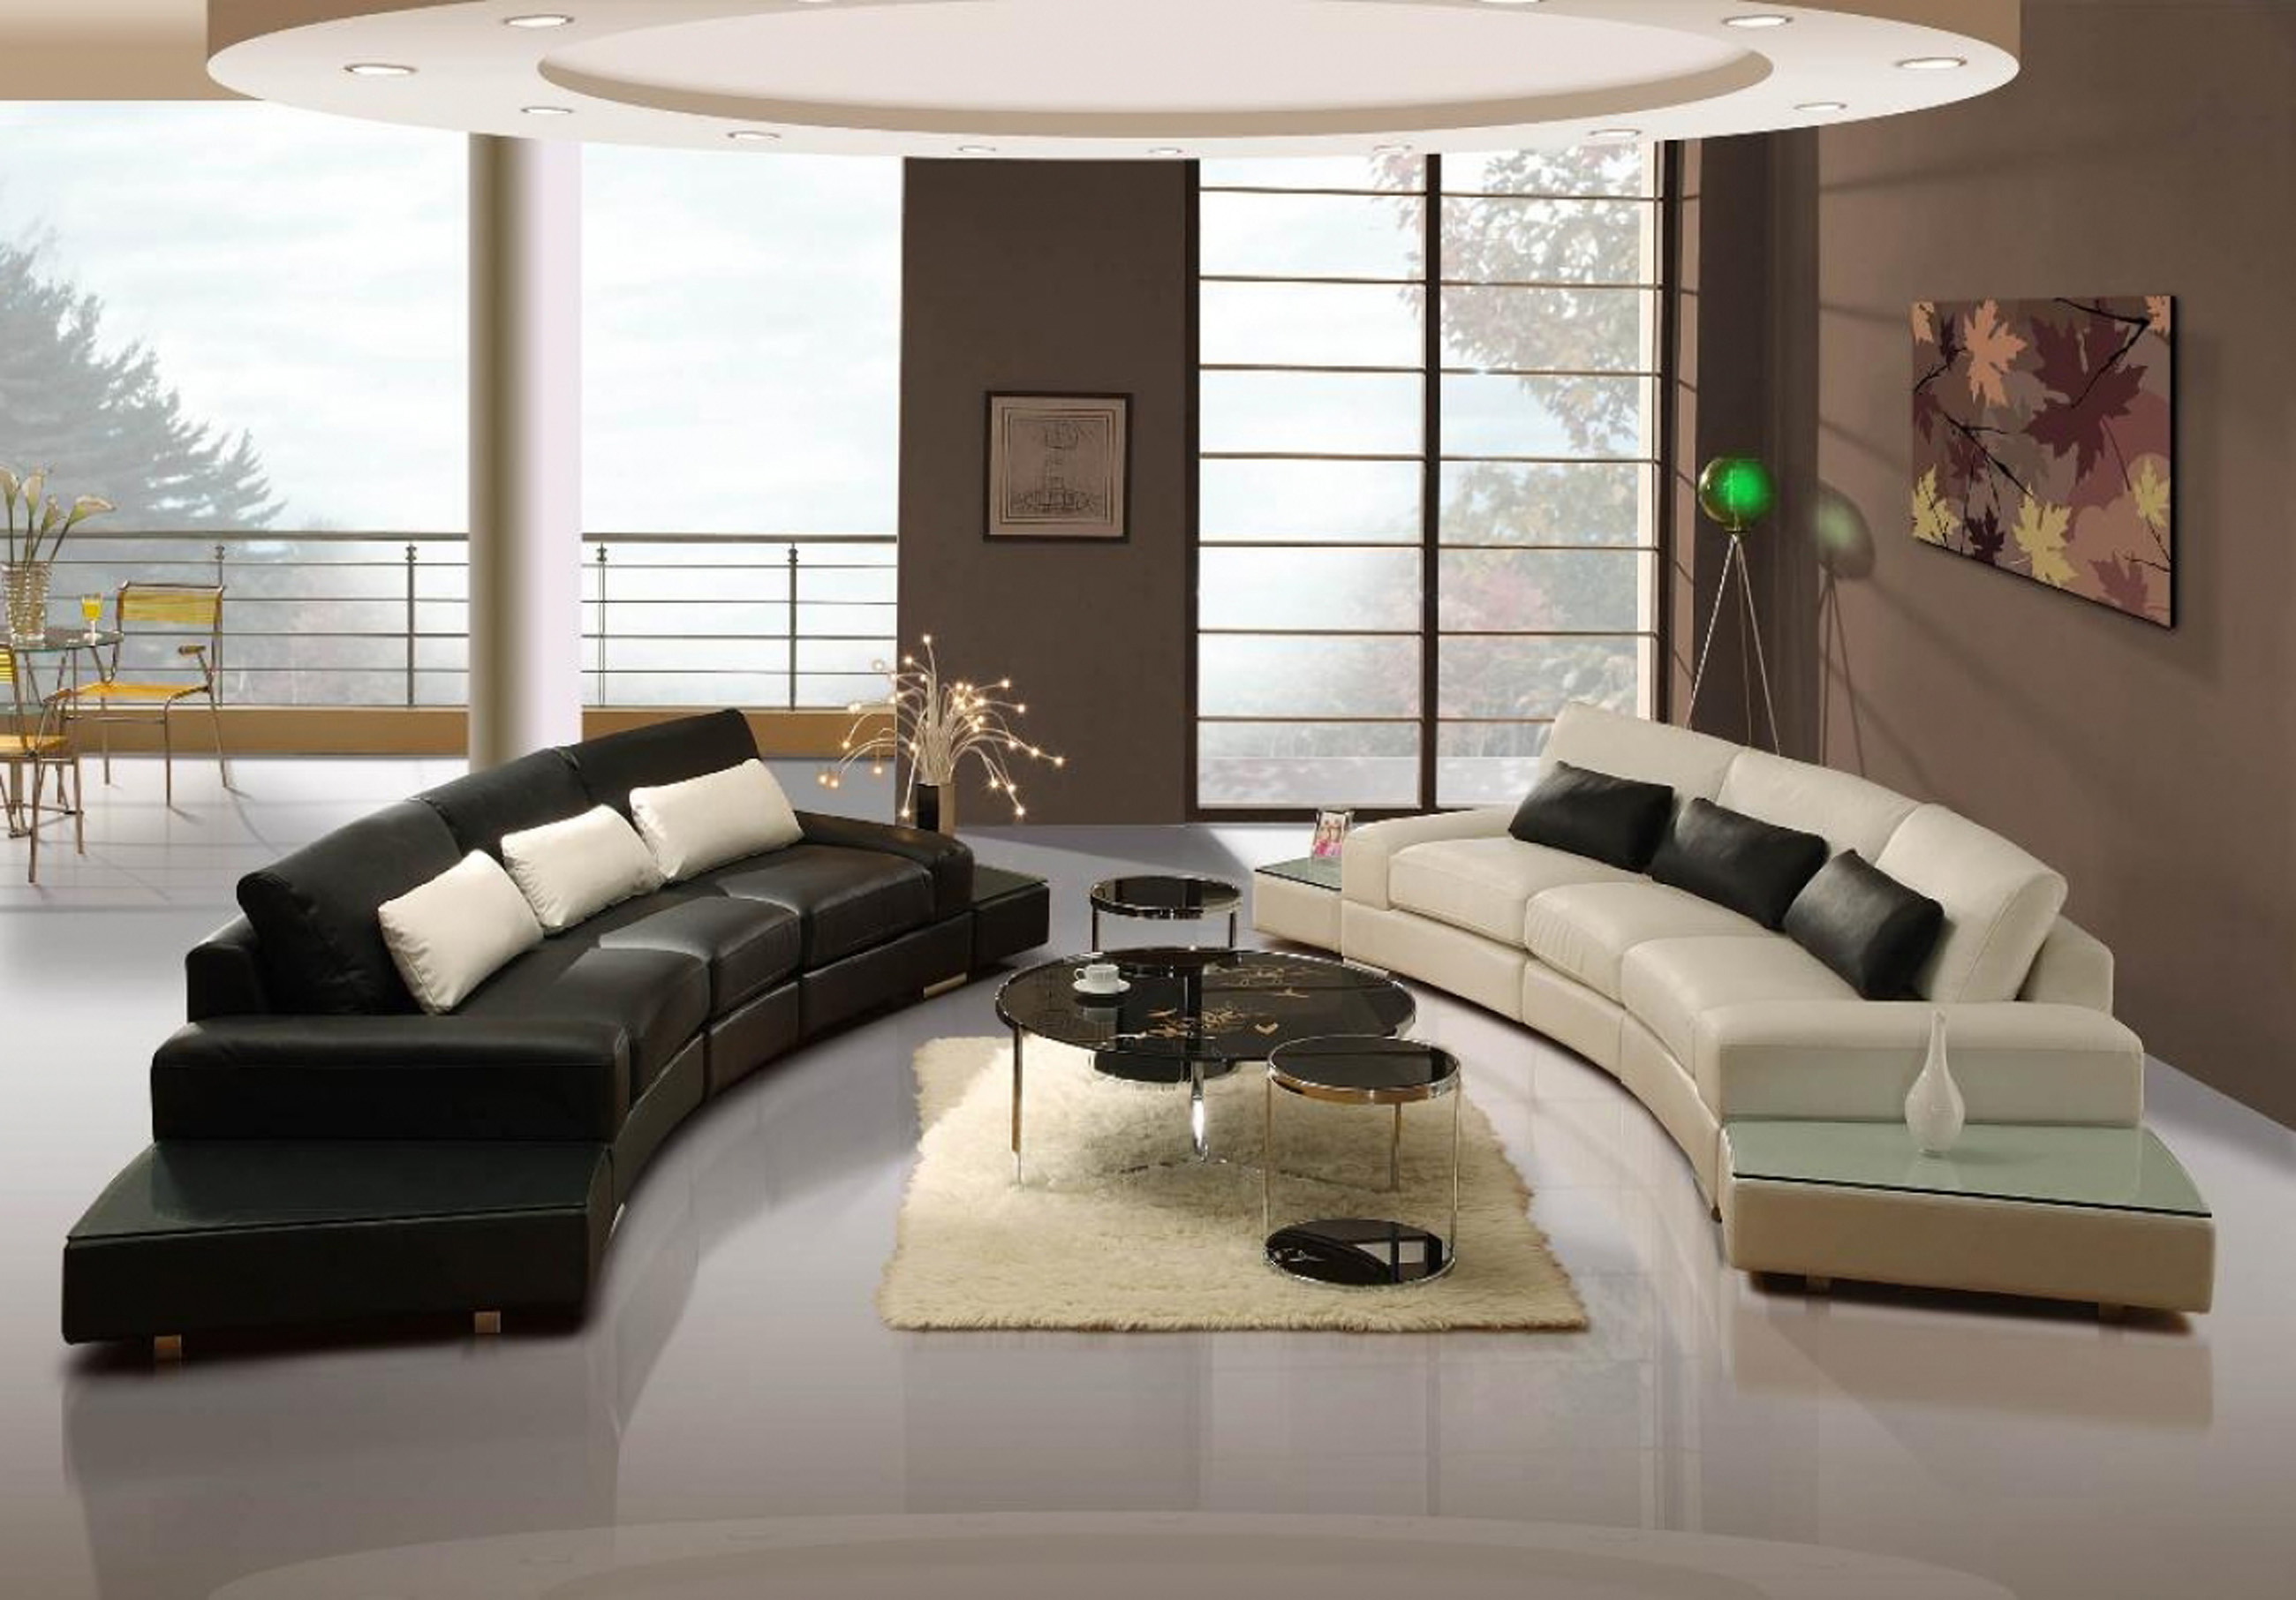 Apartments Decor Of Simple Tone With Black With White Two Curve Sectional Sofa (Image 32 of 45)